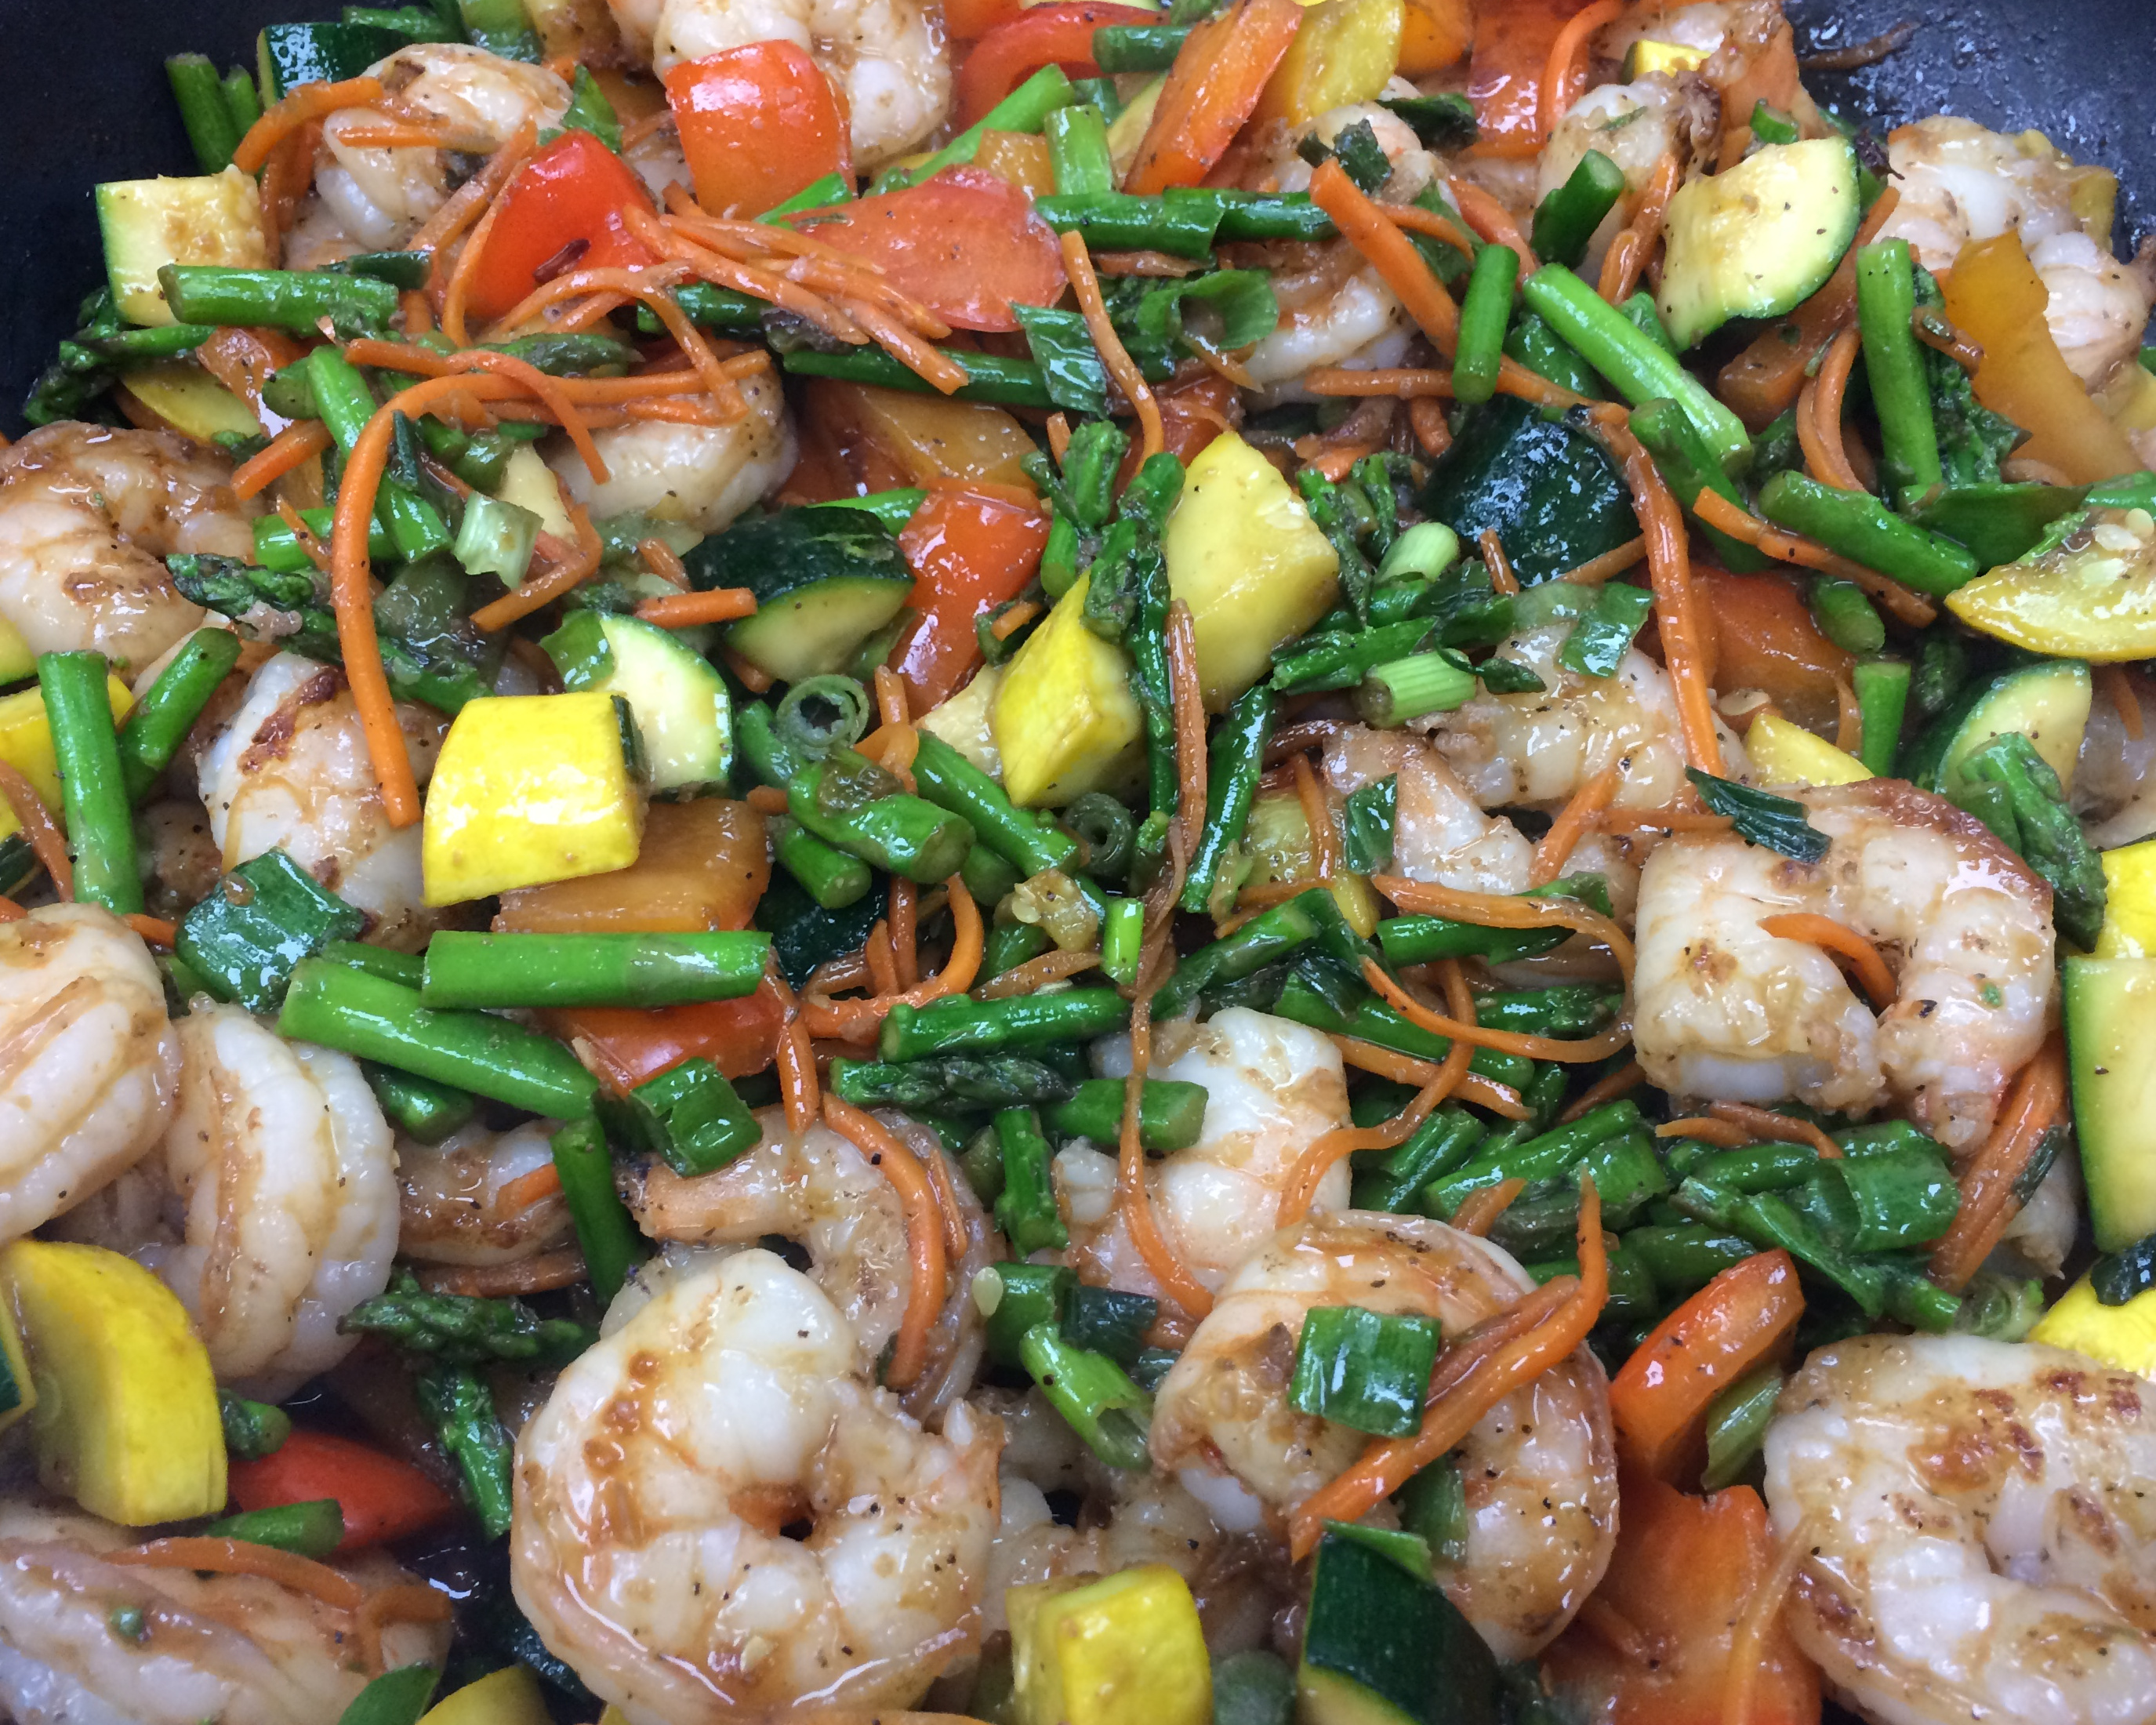 Shrimp and vegetable stir-fry